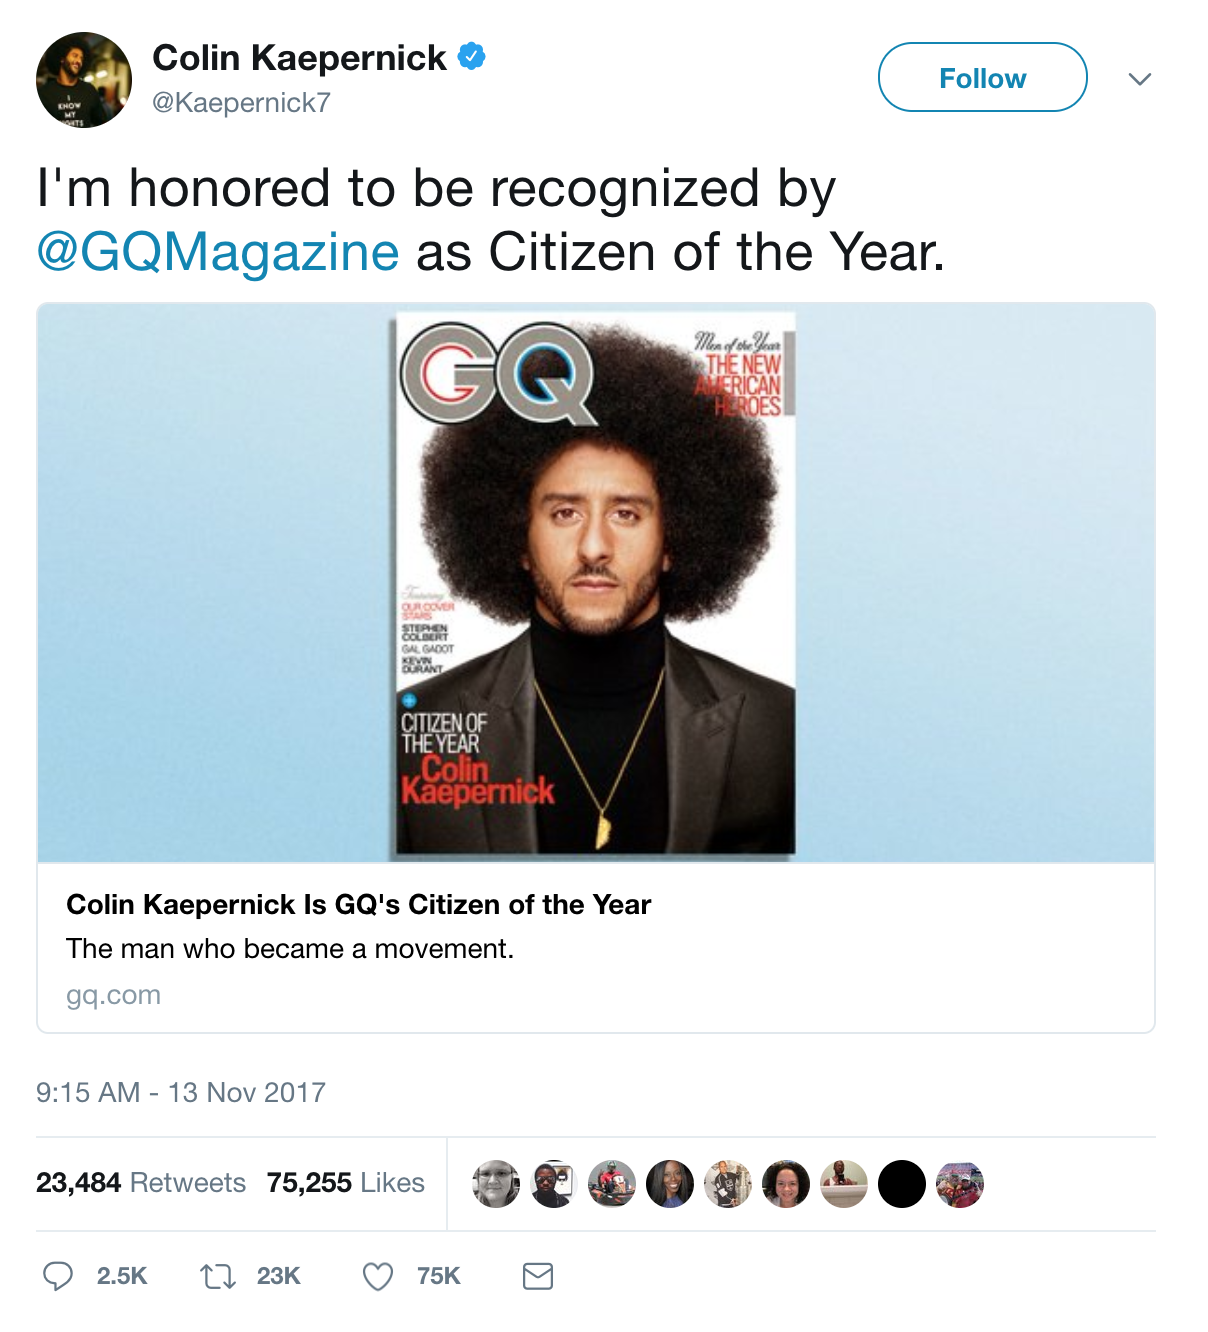 Tweet of Colin Kaepernick on the Cover of GQ